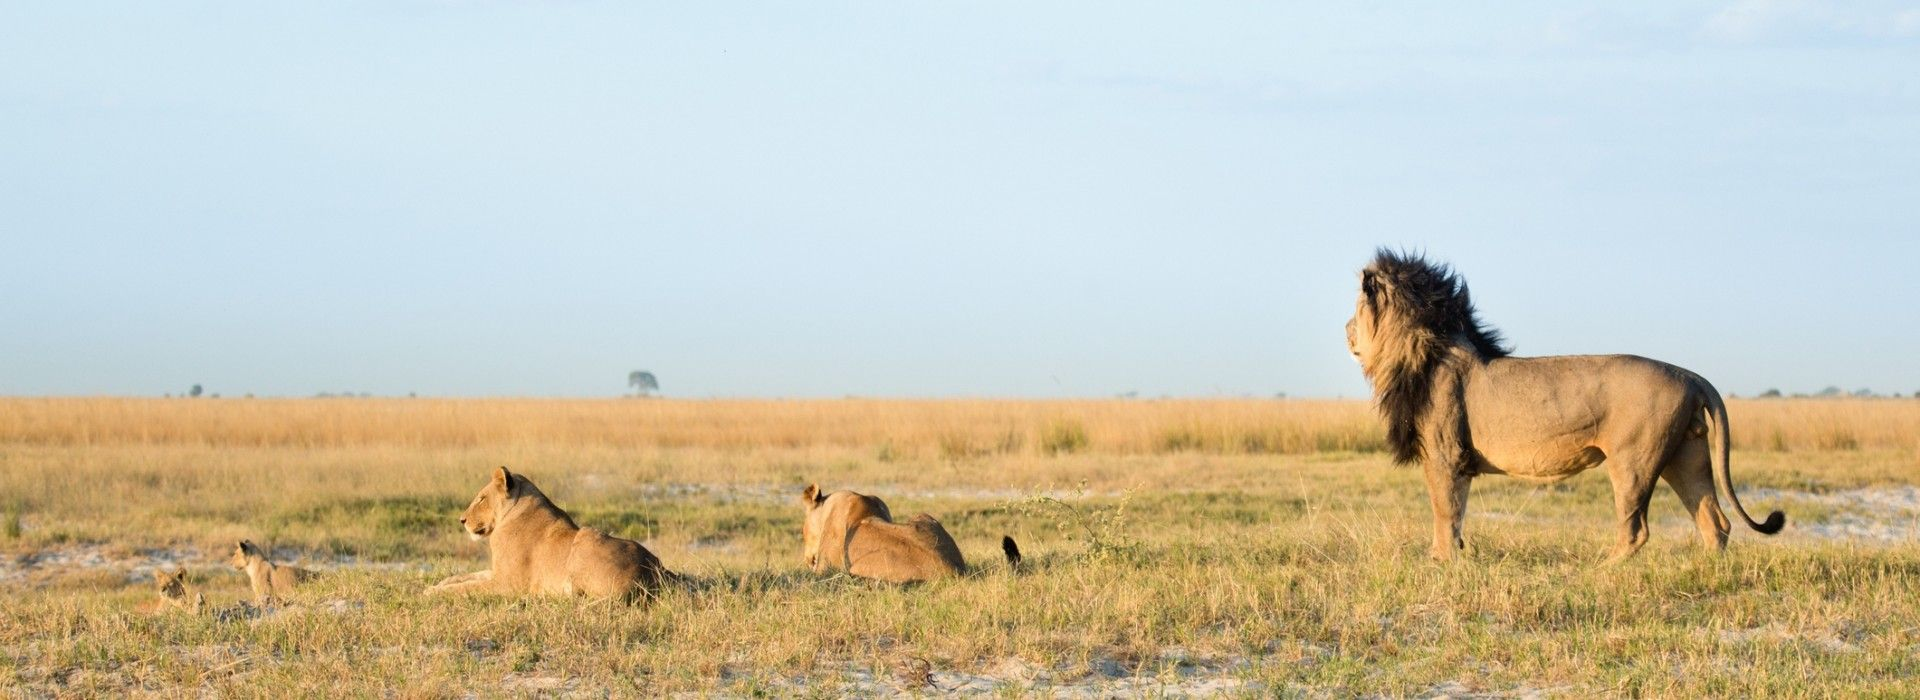 National parks Tours in Zimbabwe